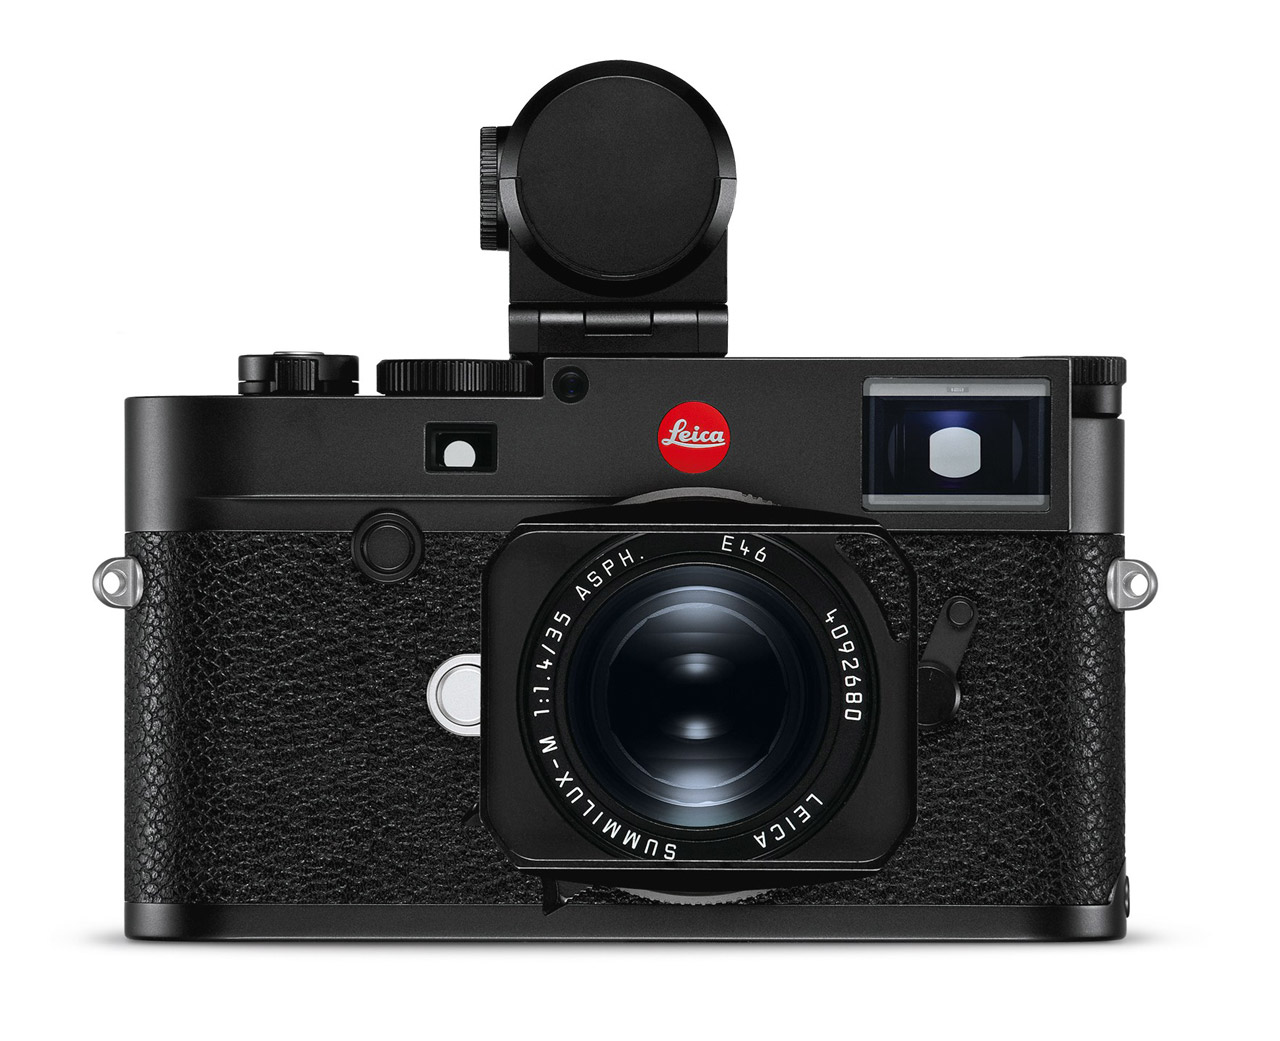 Leica's M10 Rangefinder Camera Puts Image Quality First With 24MP Image Sensor And Svelte Retro Frame